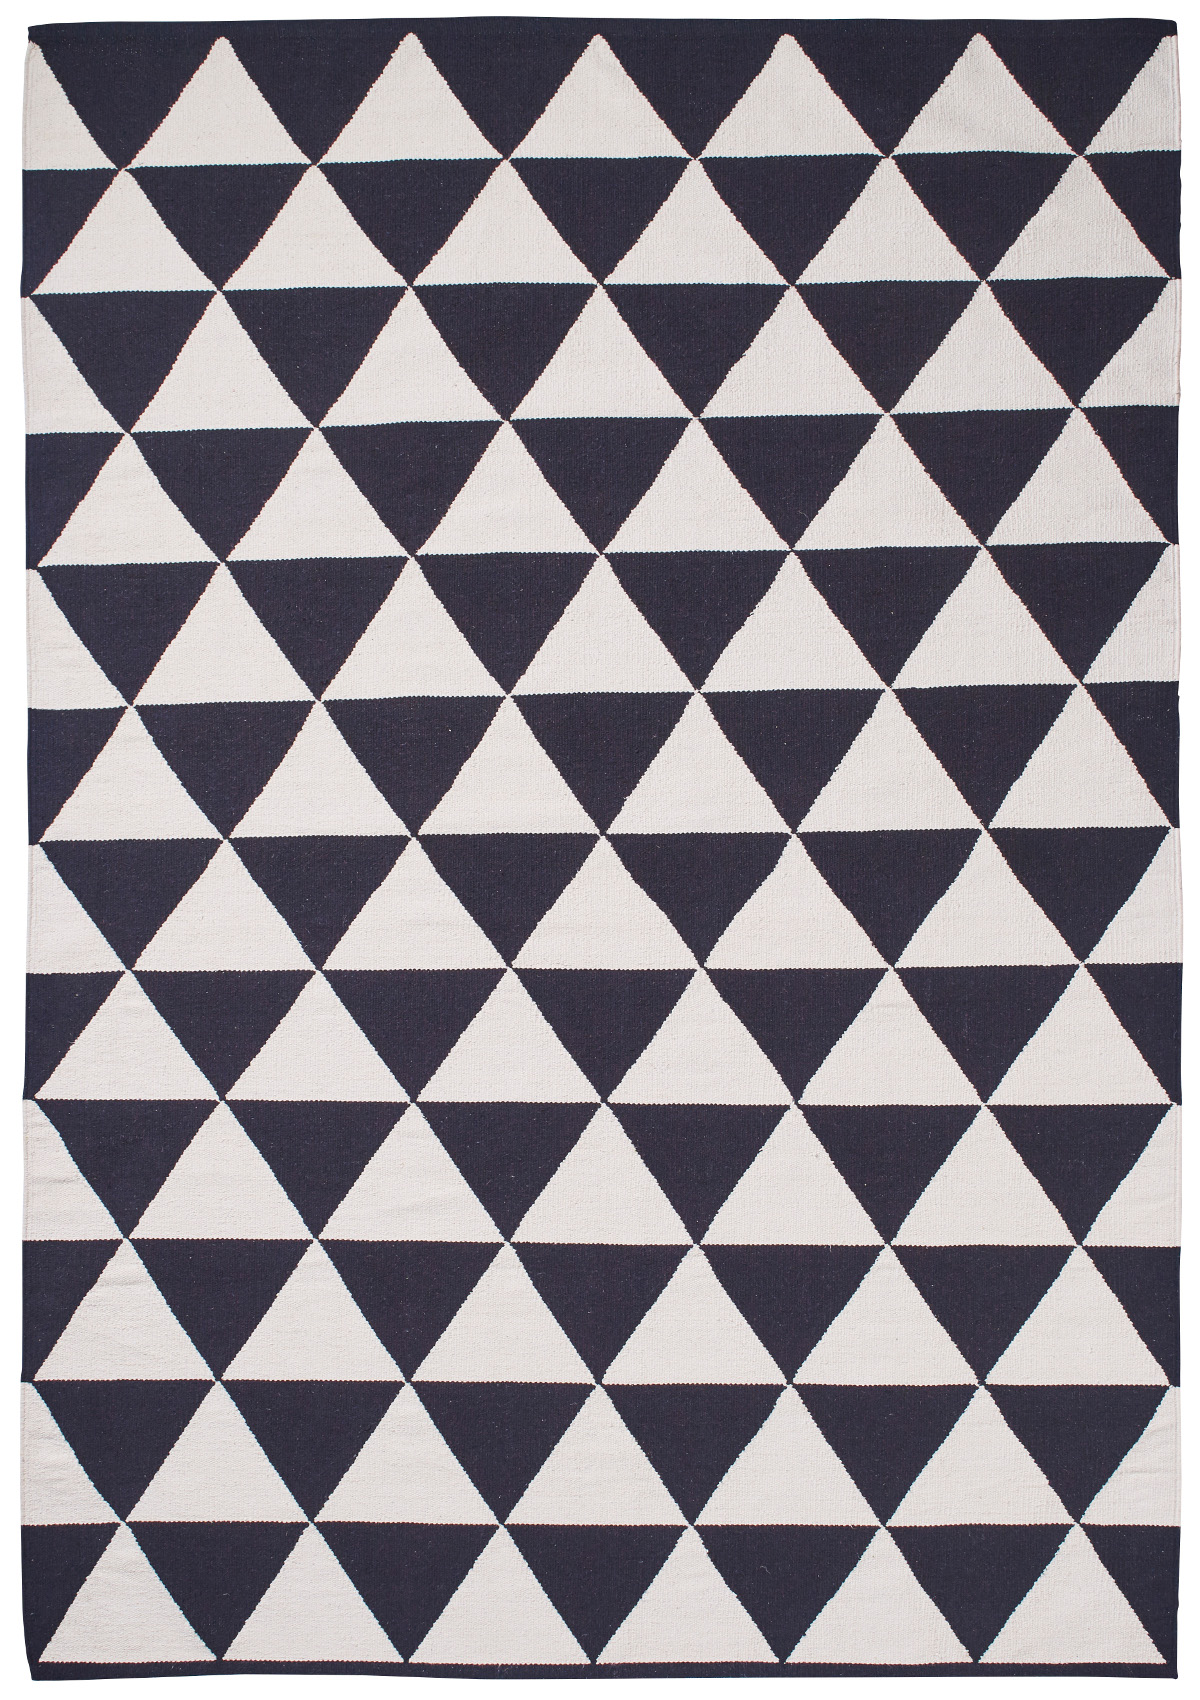 Monochrome Triangle Manhattan Rug 100 Wool Hand Knotted